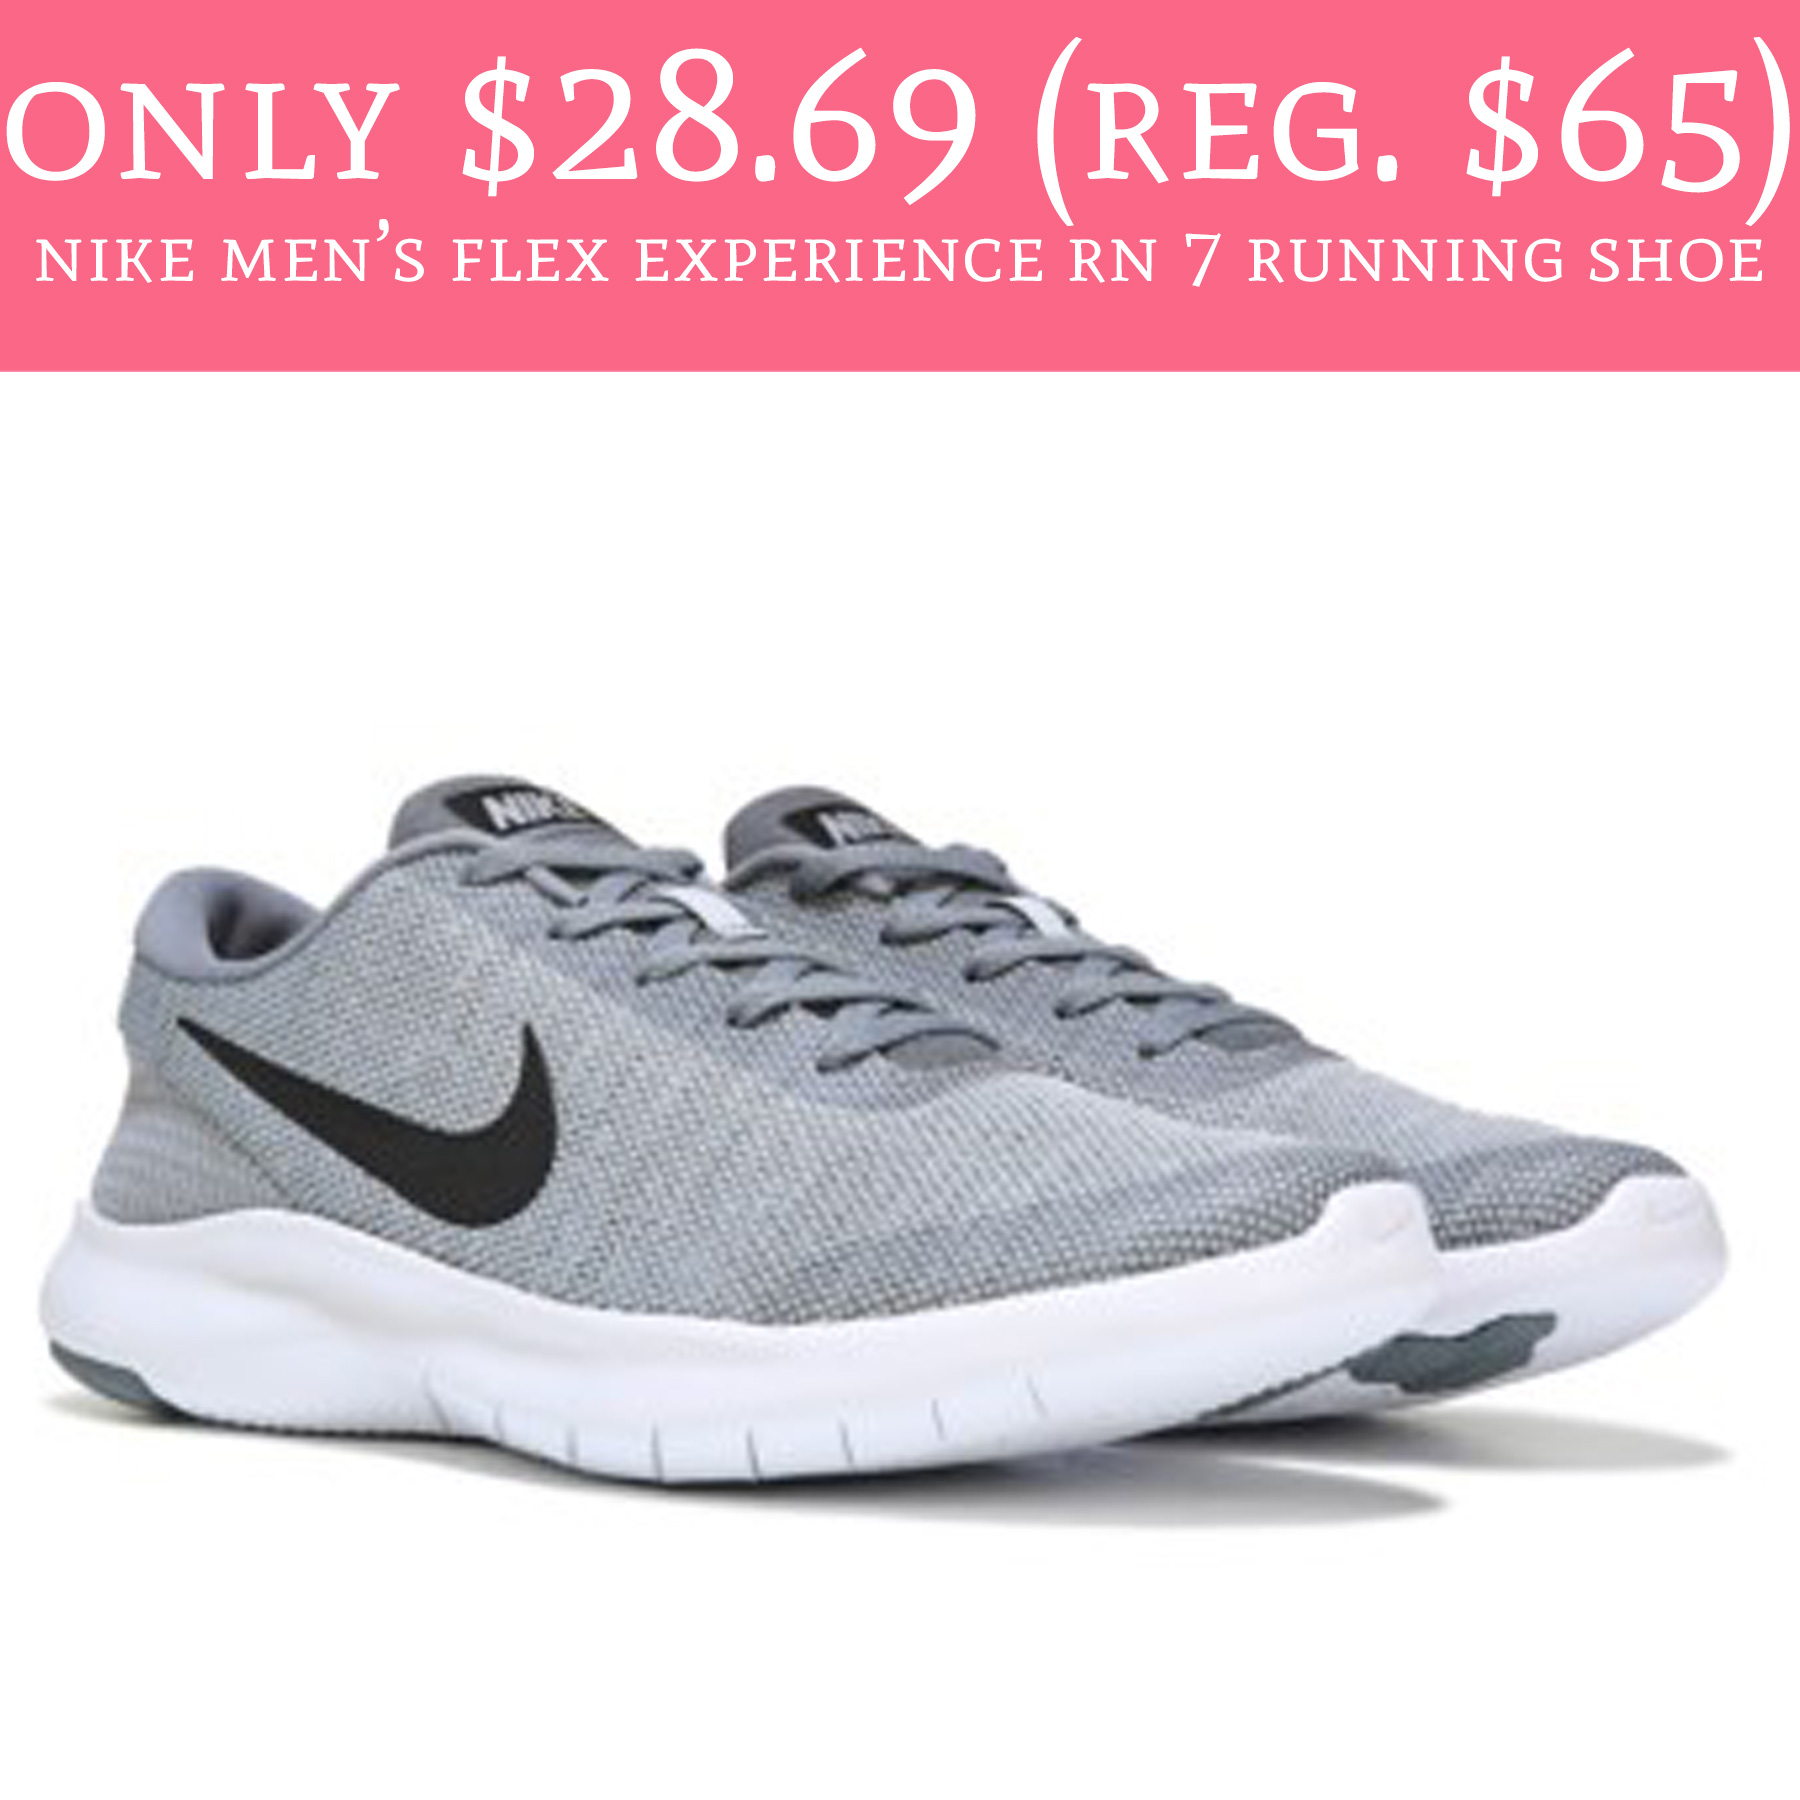 482f93630bb Stock up on Nike shoes! 😱. Hurry over to FamousFootwear.com where you can  order the Nike Men s Flex Experience RN 7 Running Shoe for just ...